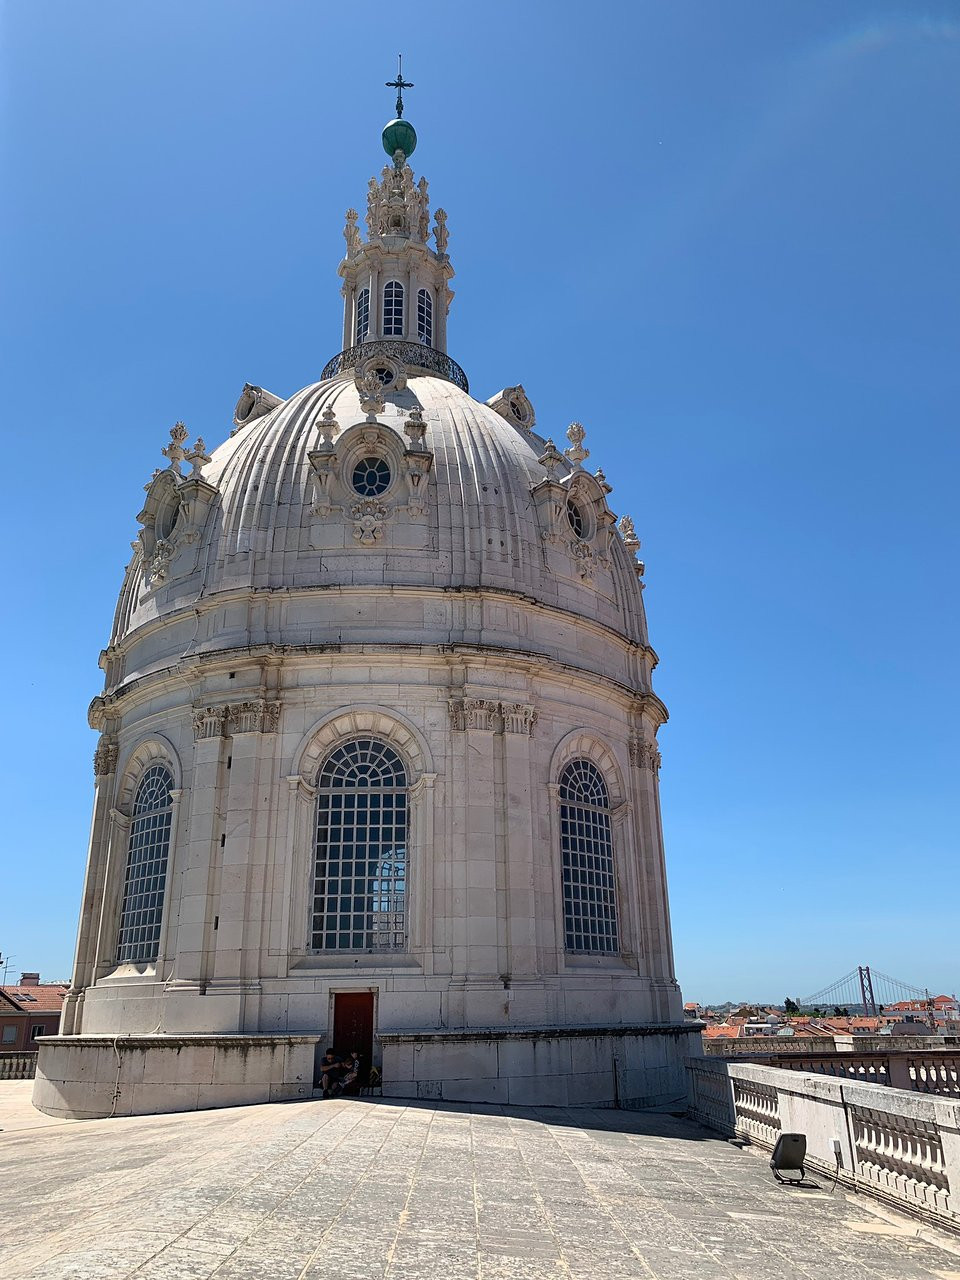 the stately white dome of the Basílica da Estrela, which can be seen from afar